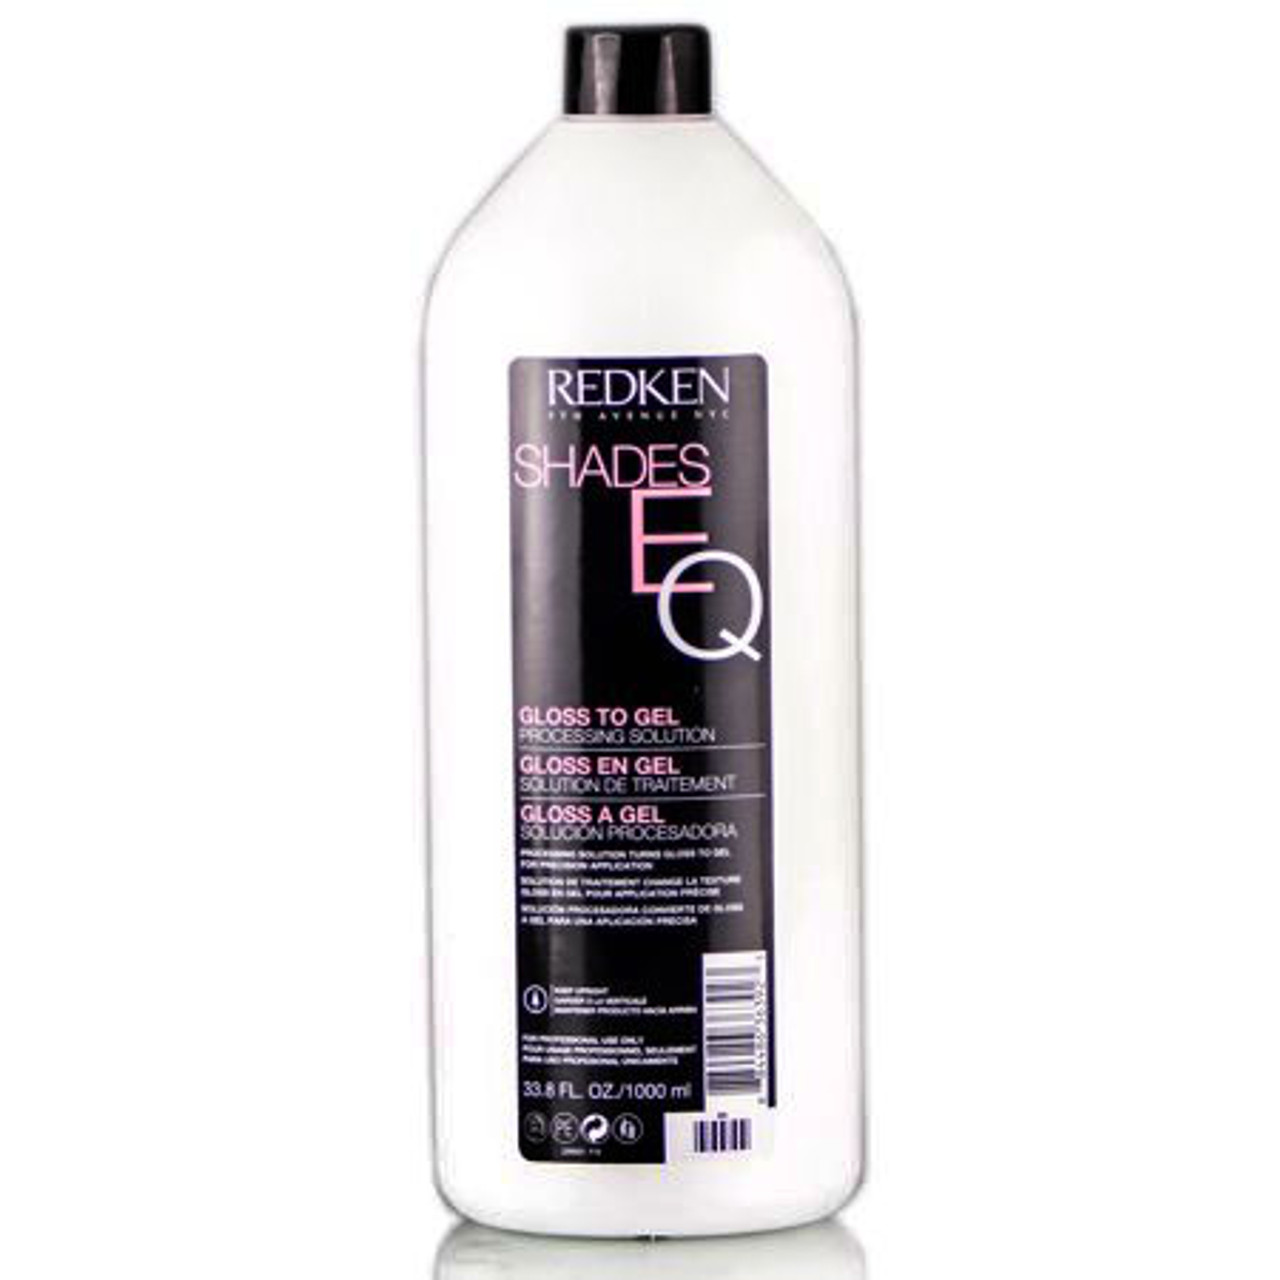 Redken Shades EQ Gloss To Gel Processing Solution - 1 L.